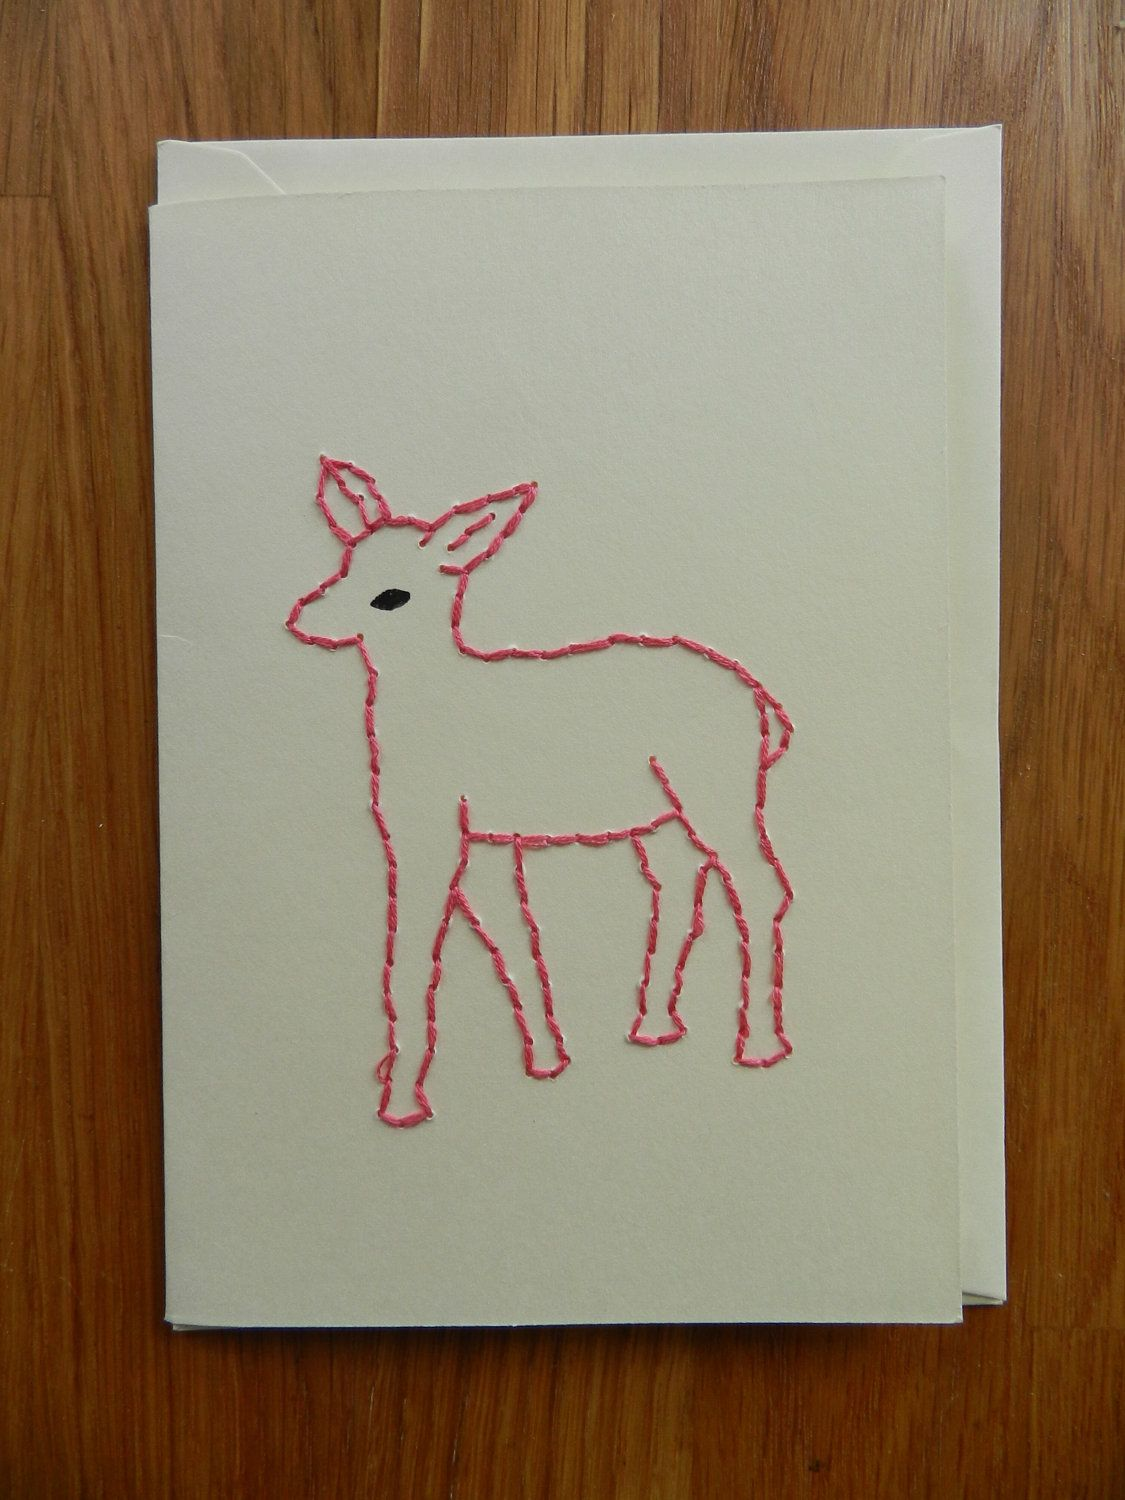 Making Christmas Card Ideas Part - 16: U003cbu003eIf Thereu0026 One Thing Youu0026 Going To Hand-make This Holiday Season, Avoid  The Generic Store-bought Christmas Cards And Opt For One Of These Creative  Ideas.